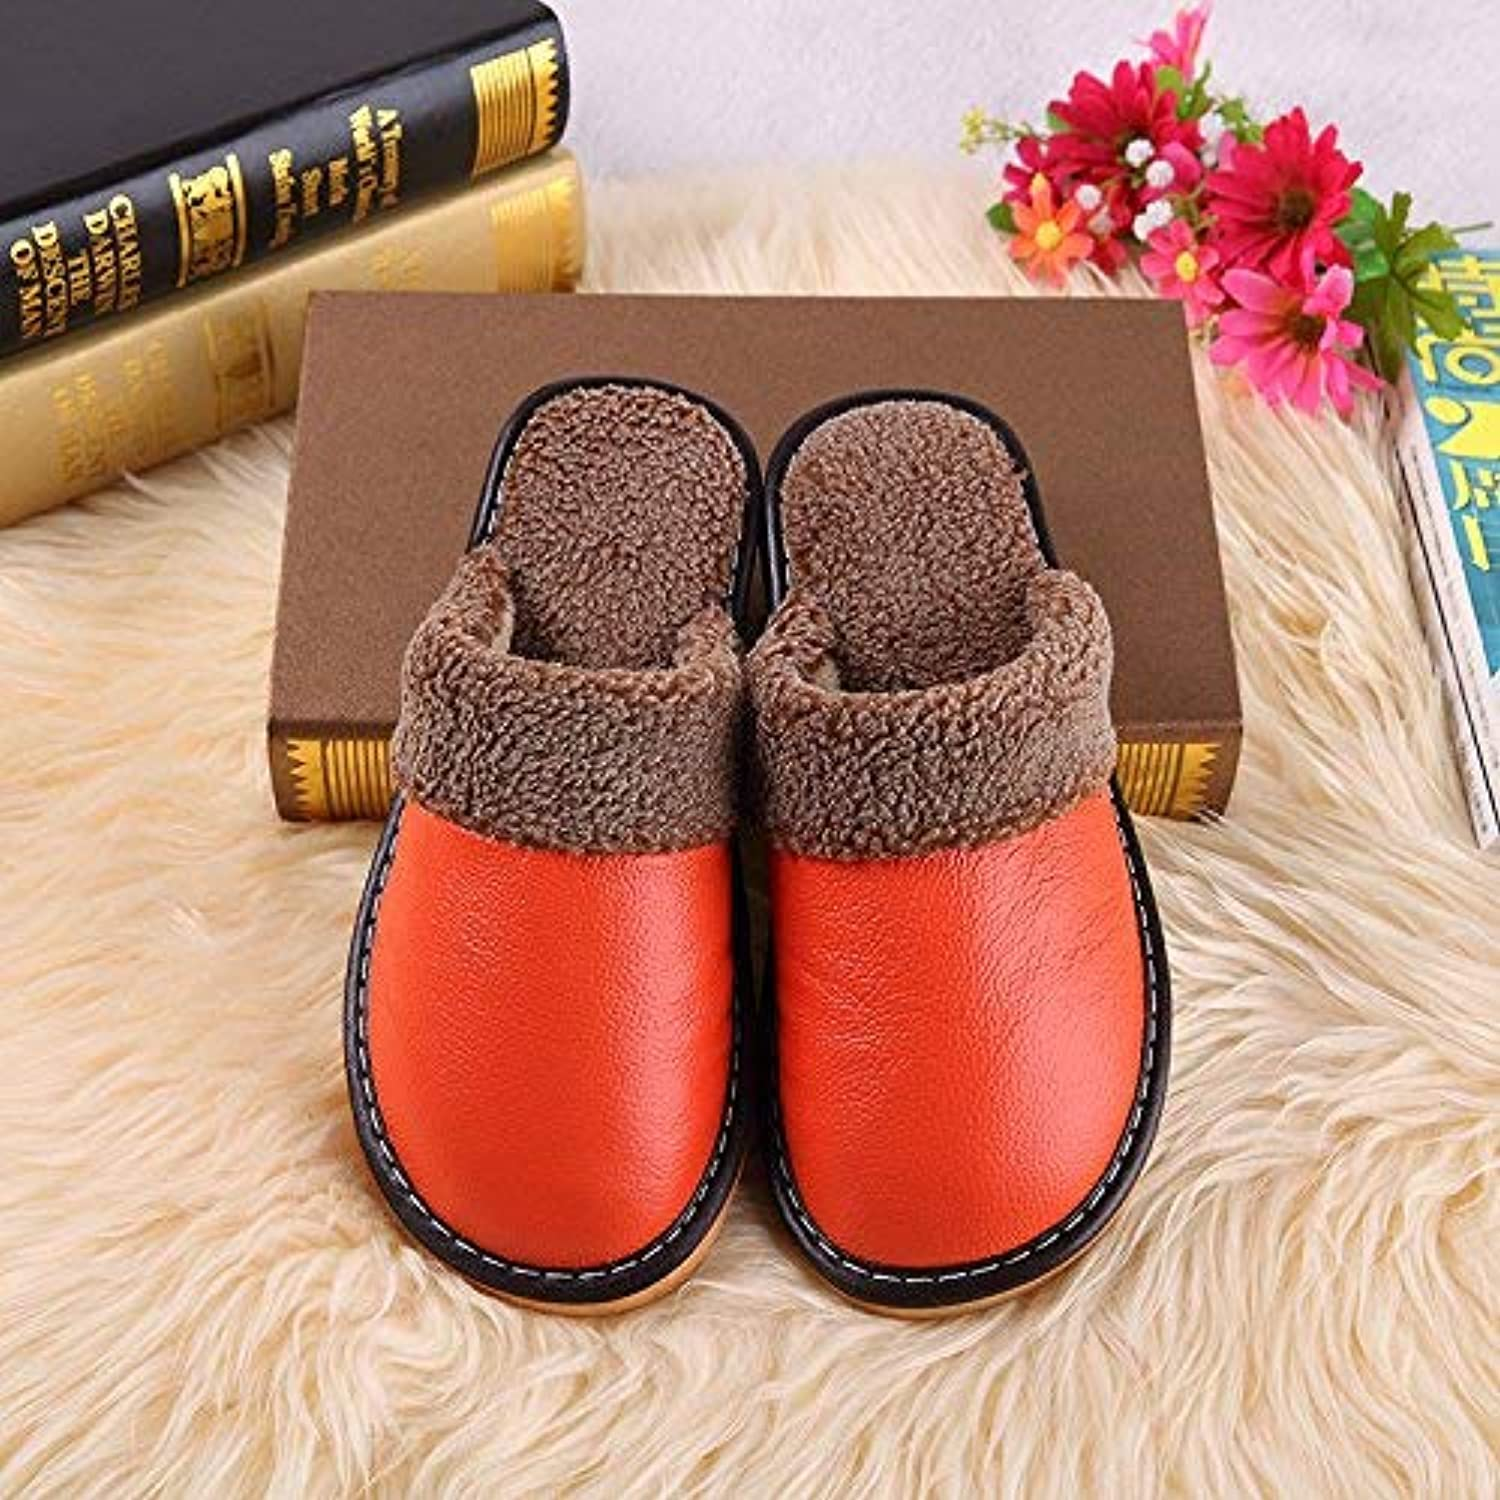 So8ooa Lady Slippers Women 's Home Slippers Indoor Non Slip Thermal Insulation Artificial Leather Slippers for Women orange Medium